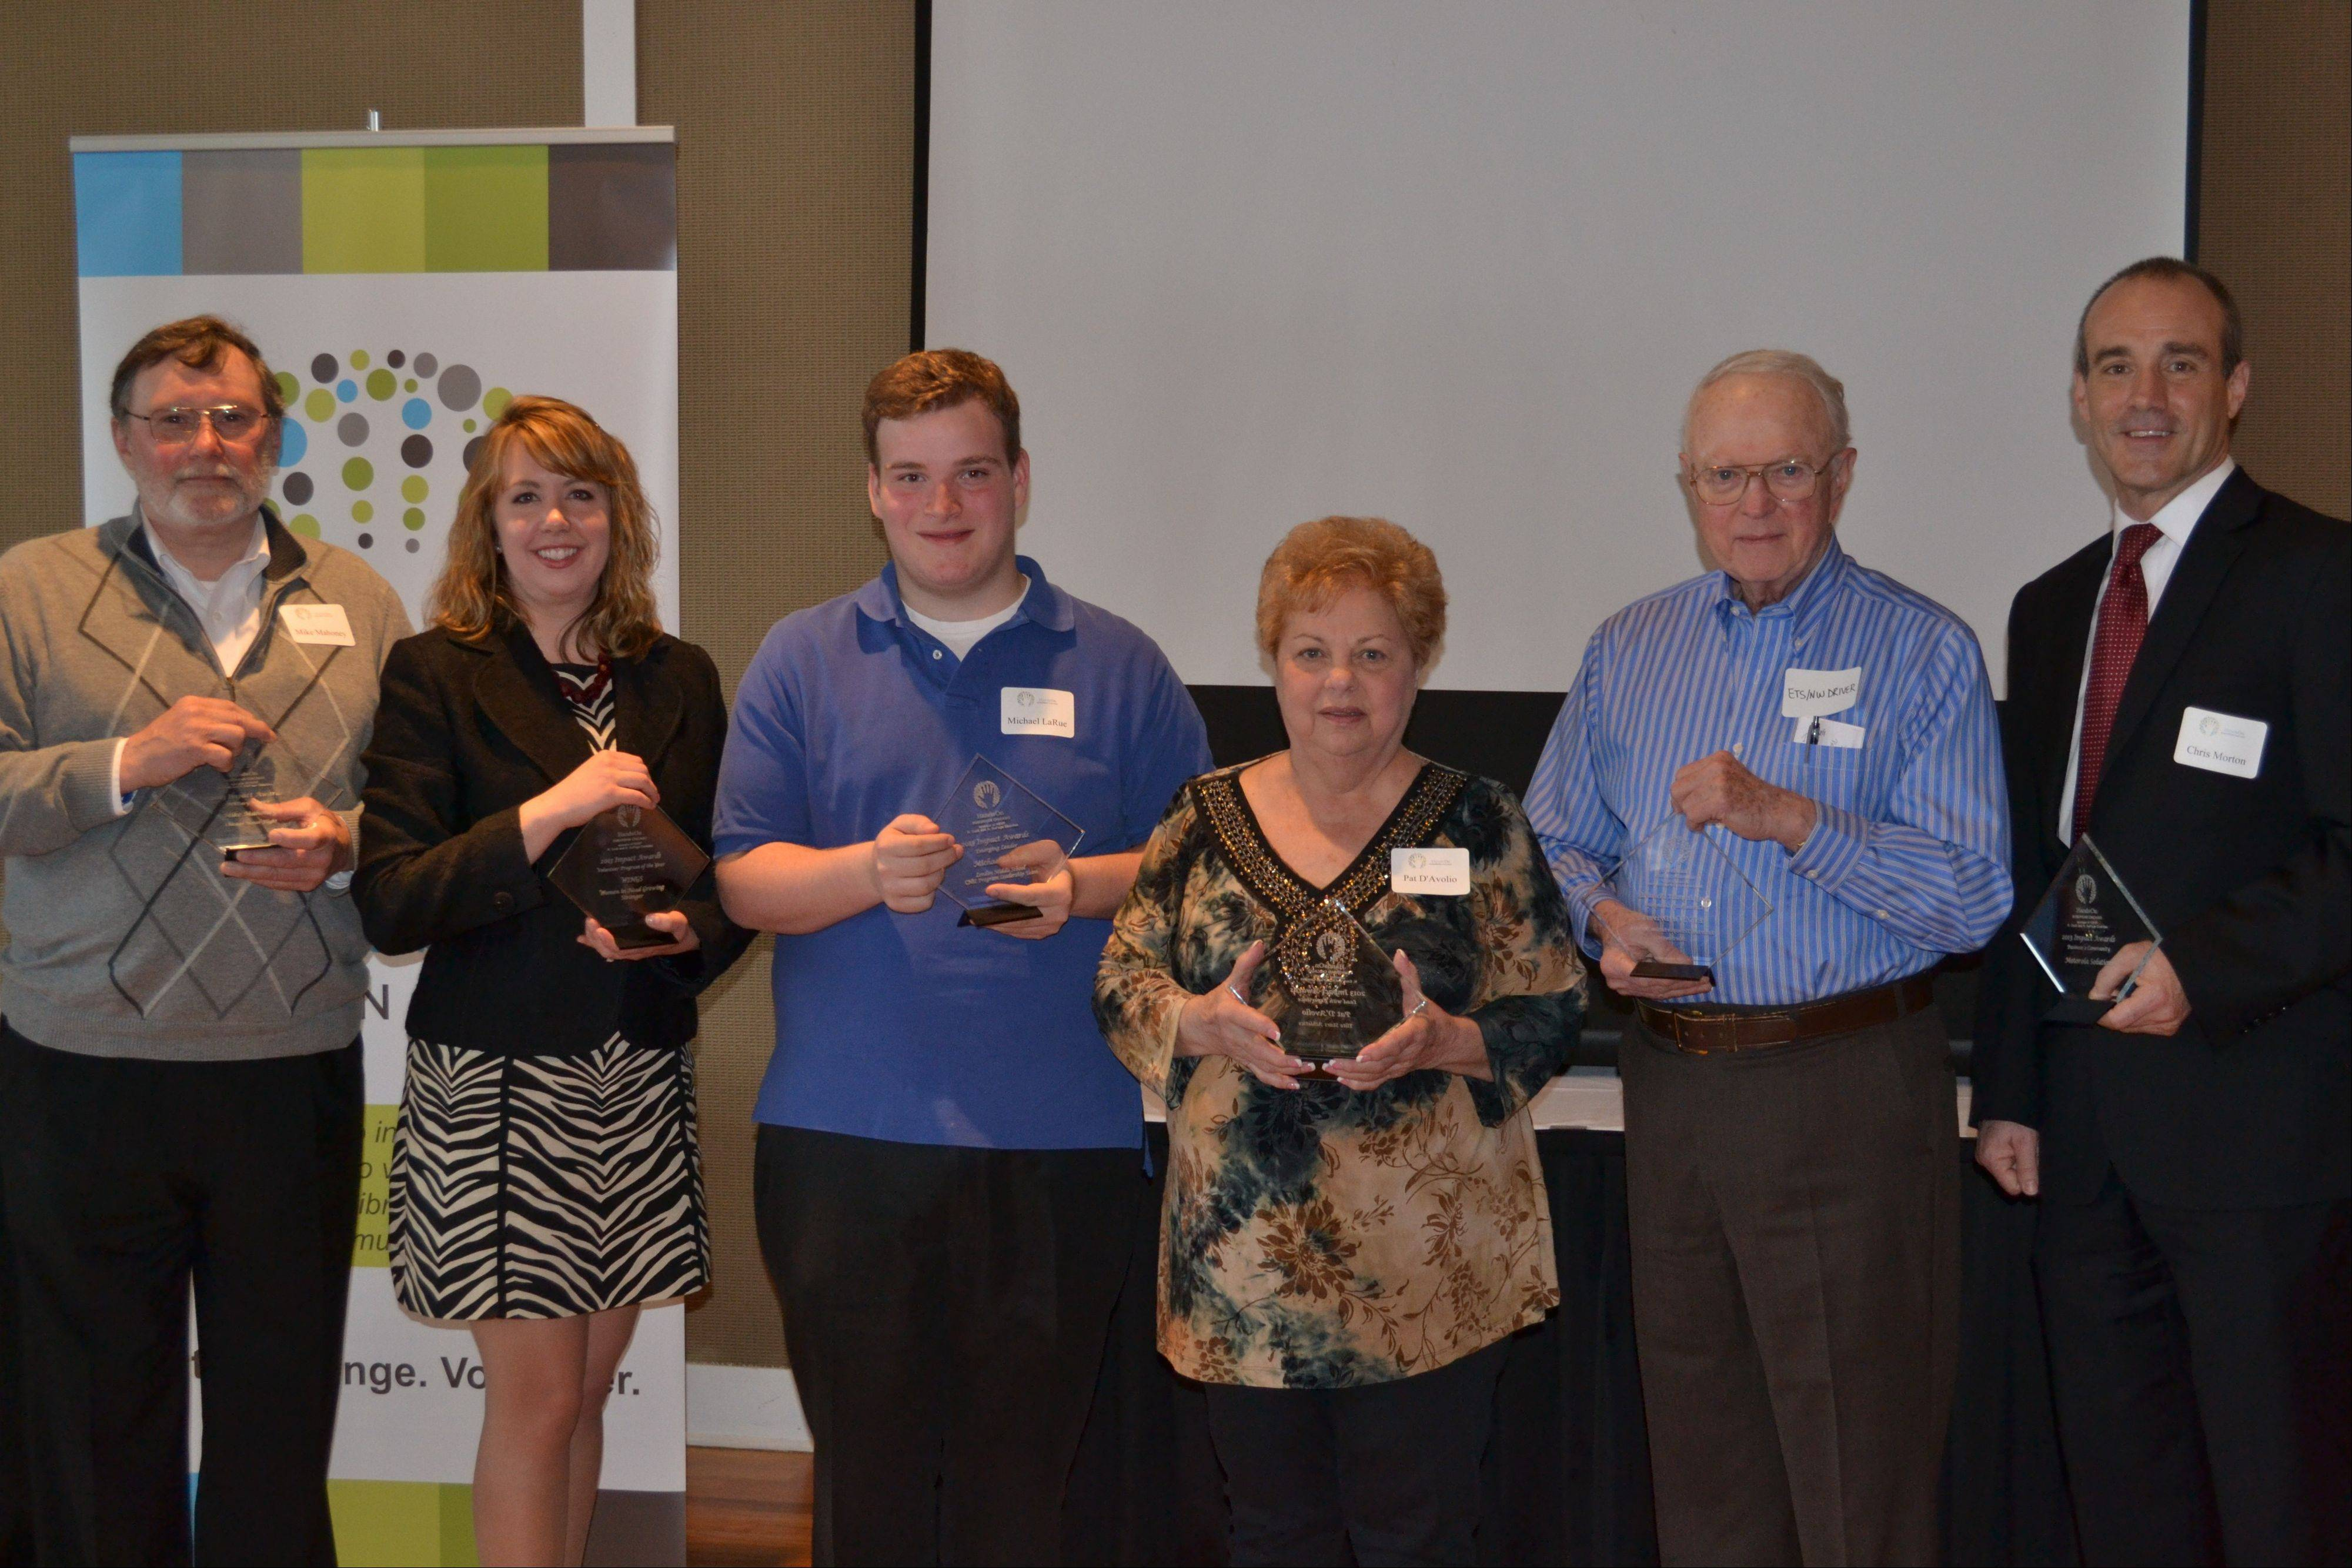 The 2013 Impact Award winners